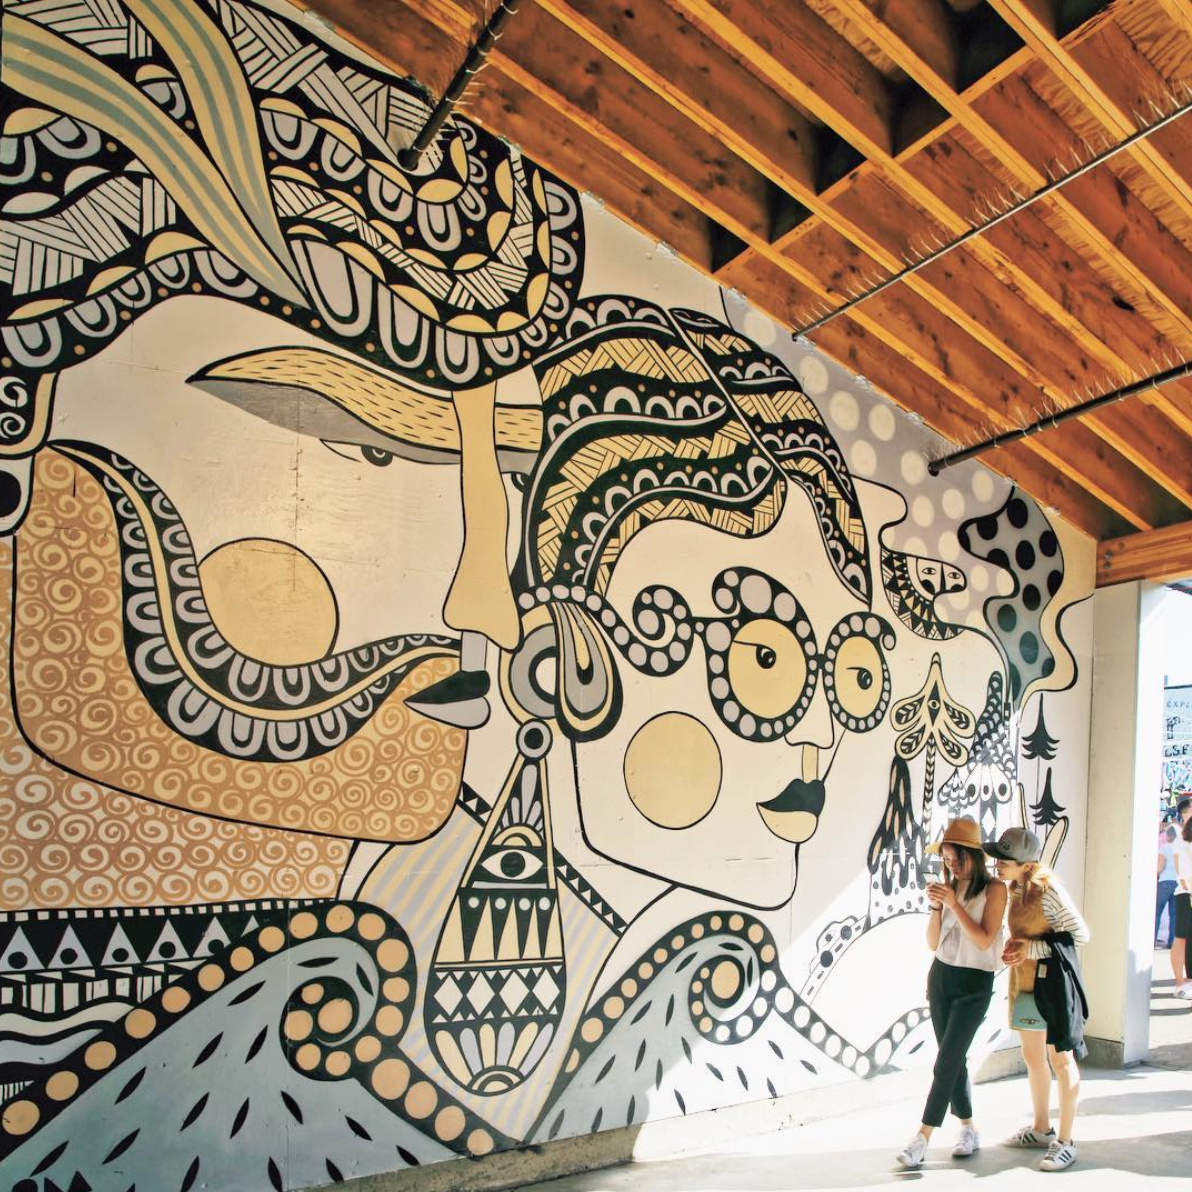 Ola's mural for the Art Smash on Granville Island, Vancouver.